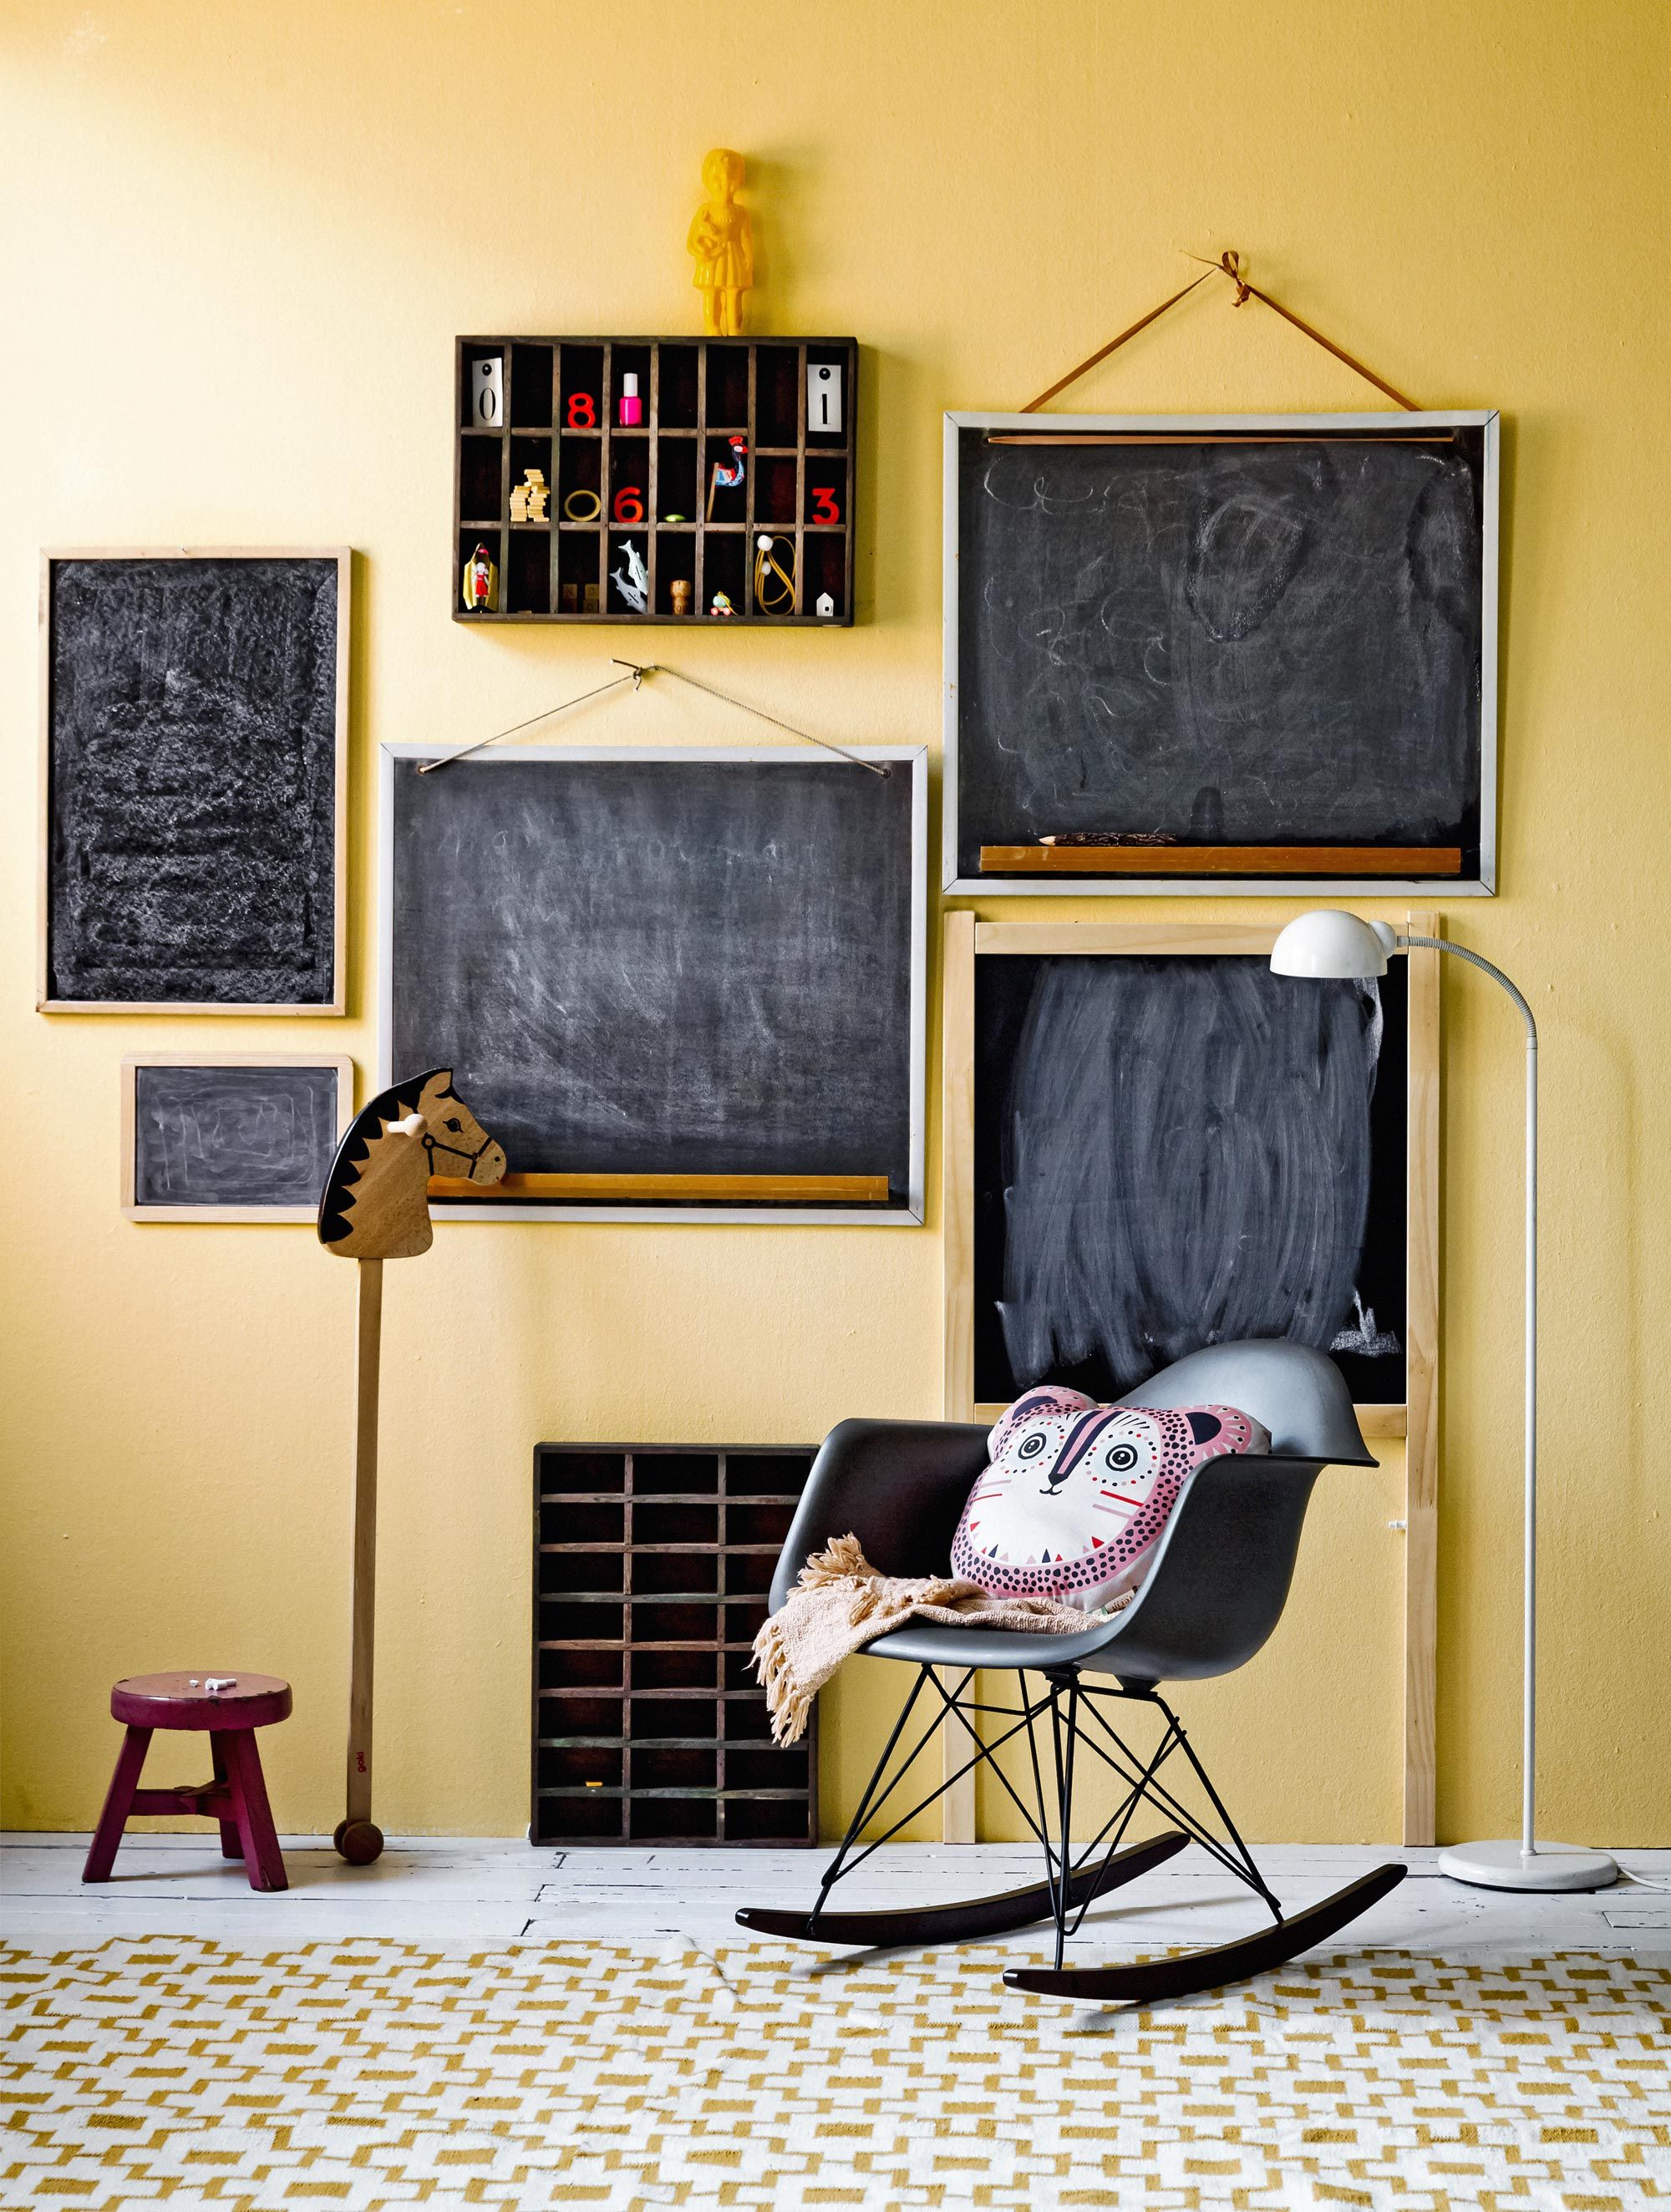 Kleine Schoolbordjes Schoolborden Nikolas Dwmatia Kids Room Wallpaper Yellow Kids